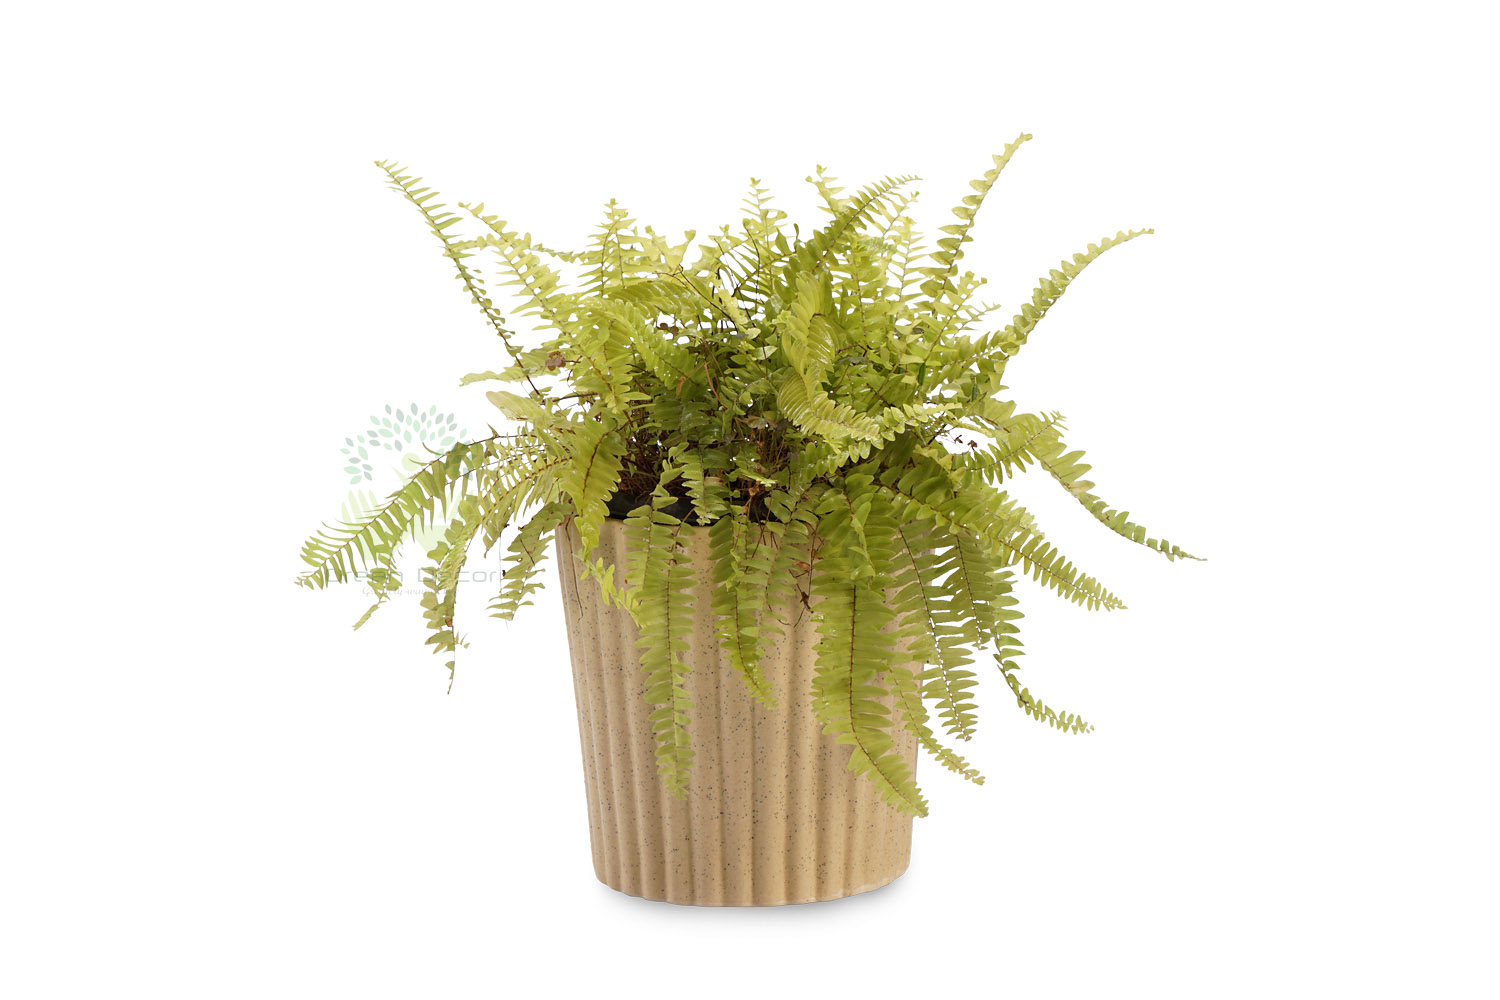 Buy Boston Fern Plants , White Pots and seeds in Delhi NCR by the best online nursery shop Greendecor.